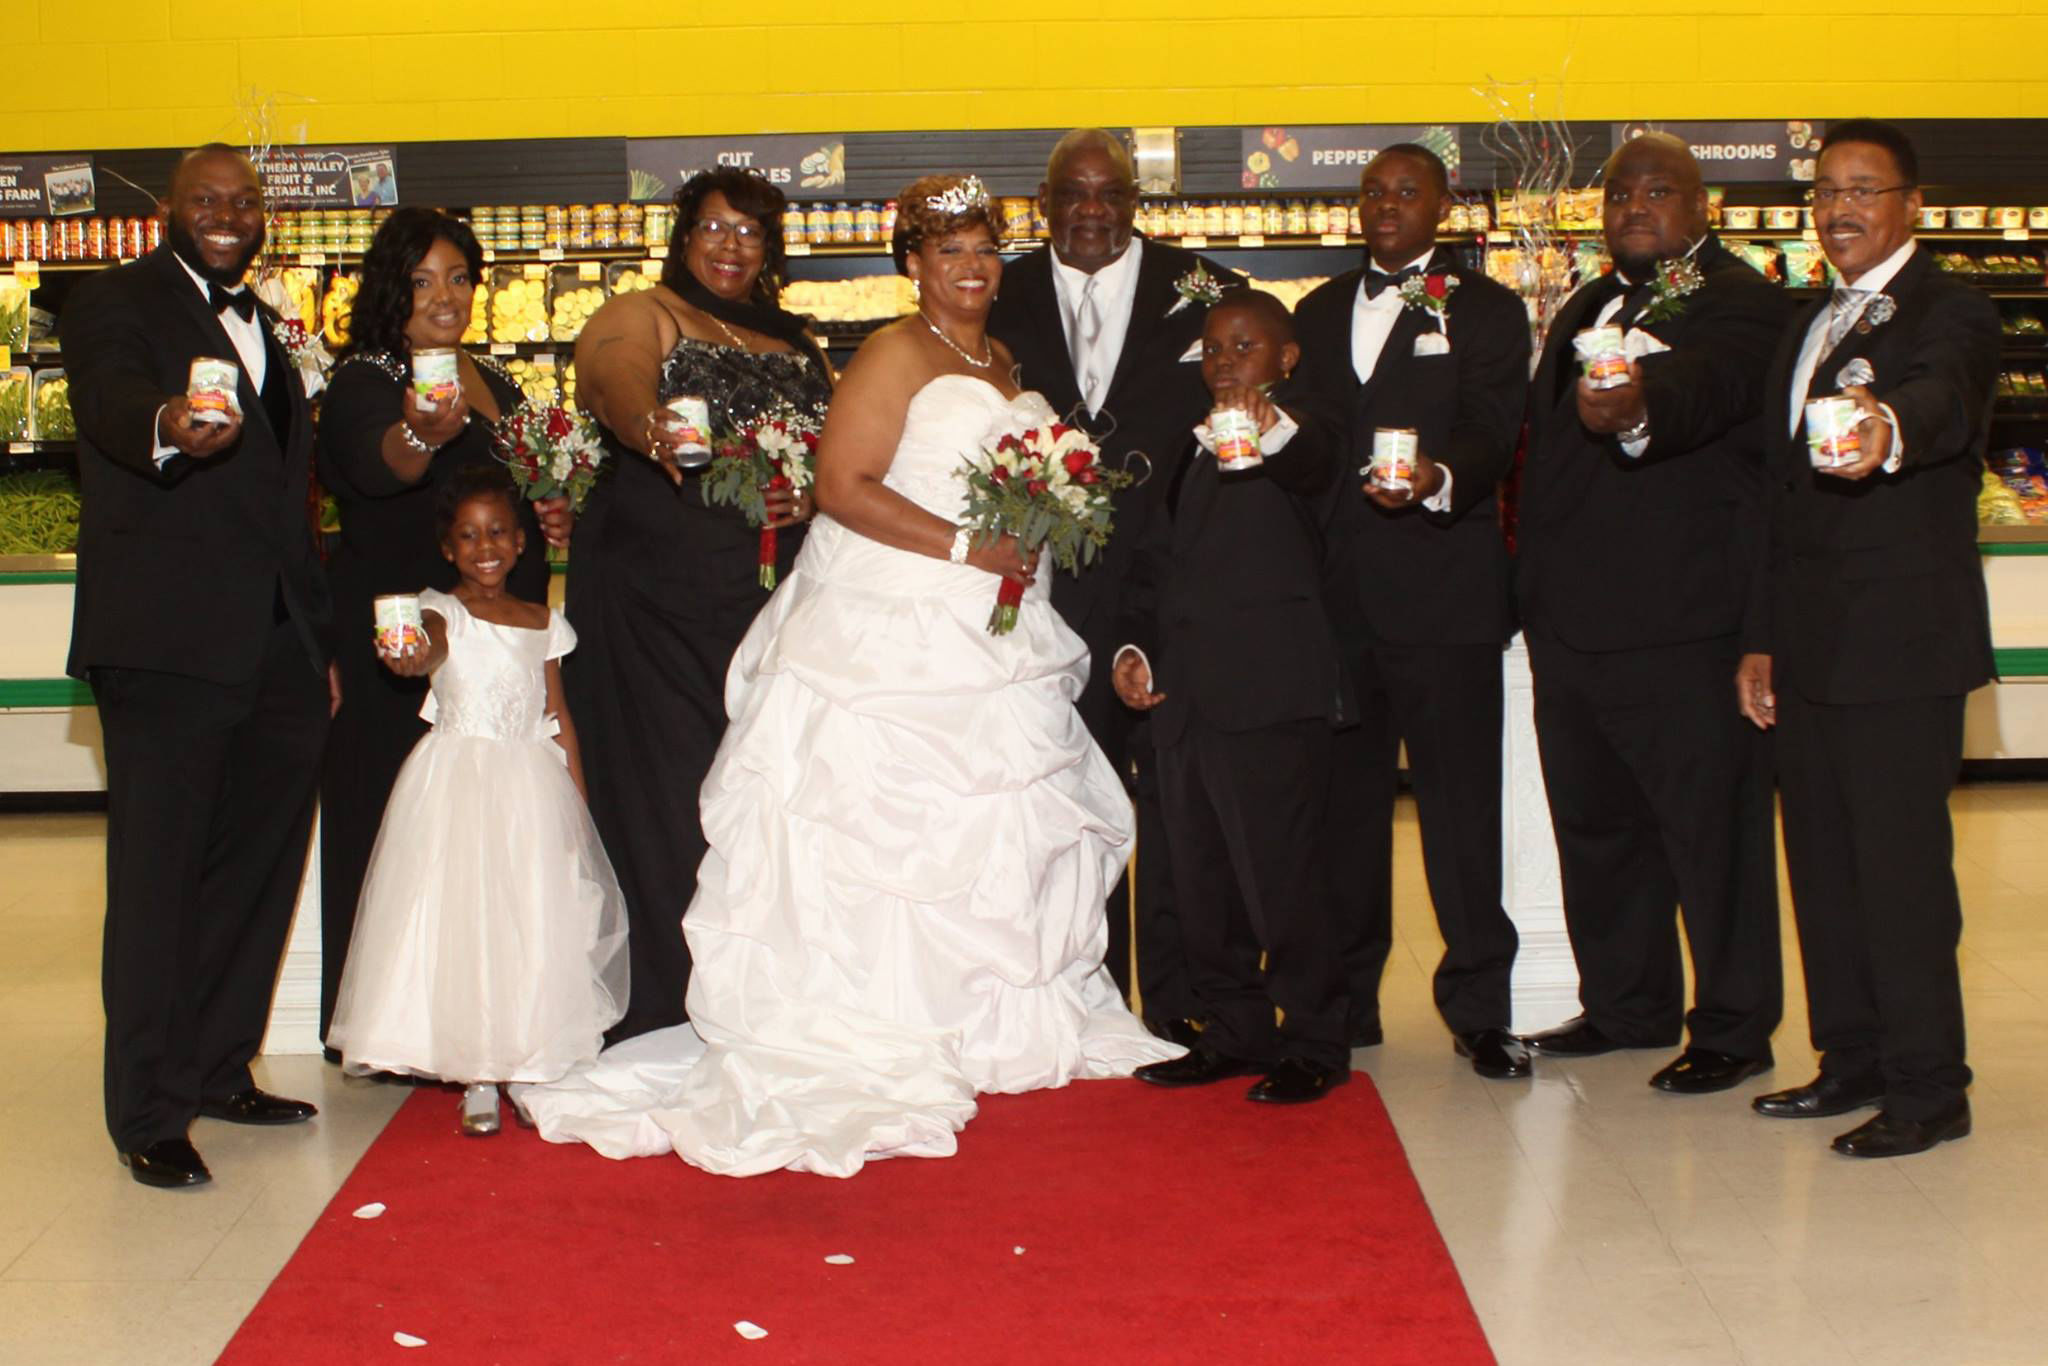 This Couple Got Married in a Georgia Supermarket on Thanksgiving Day